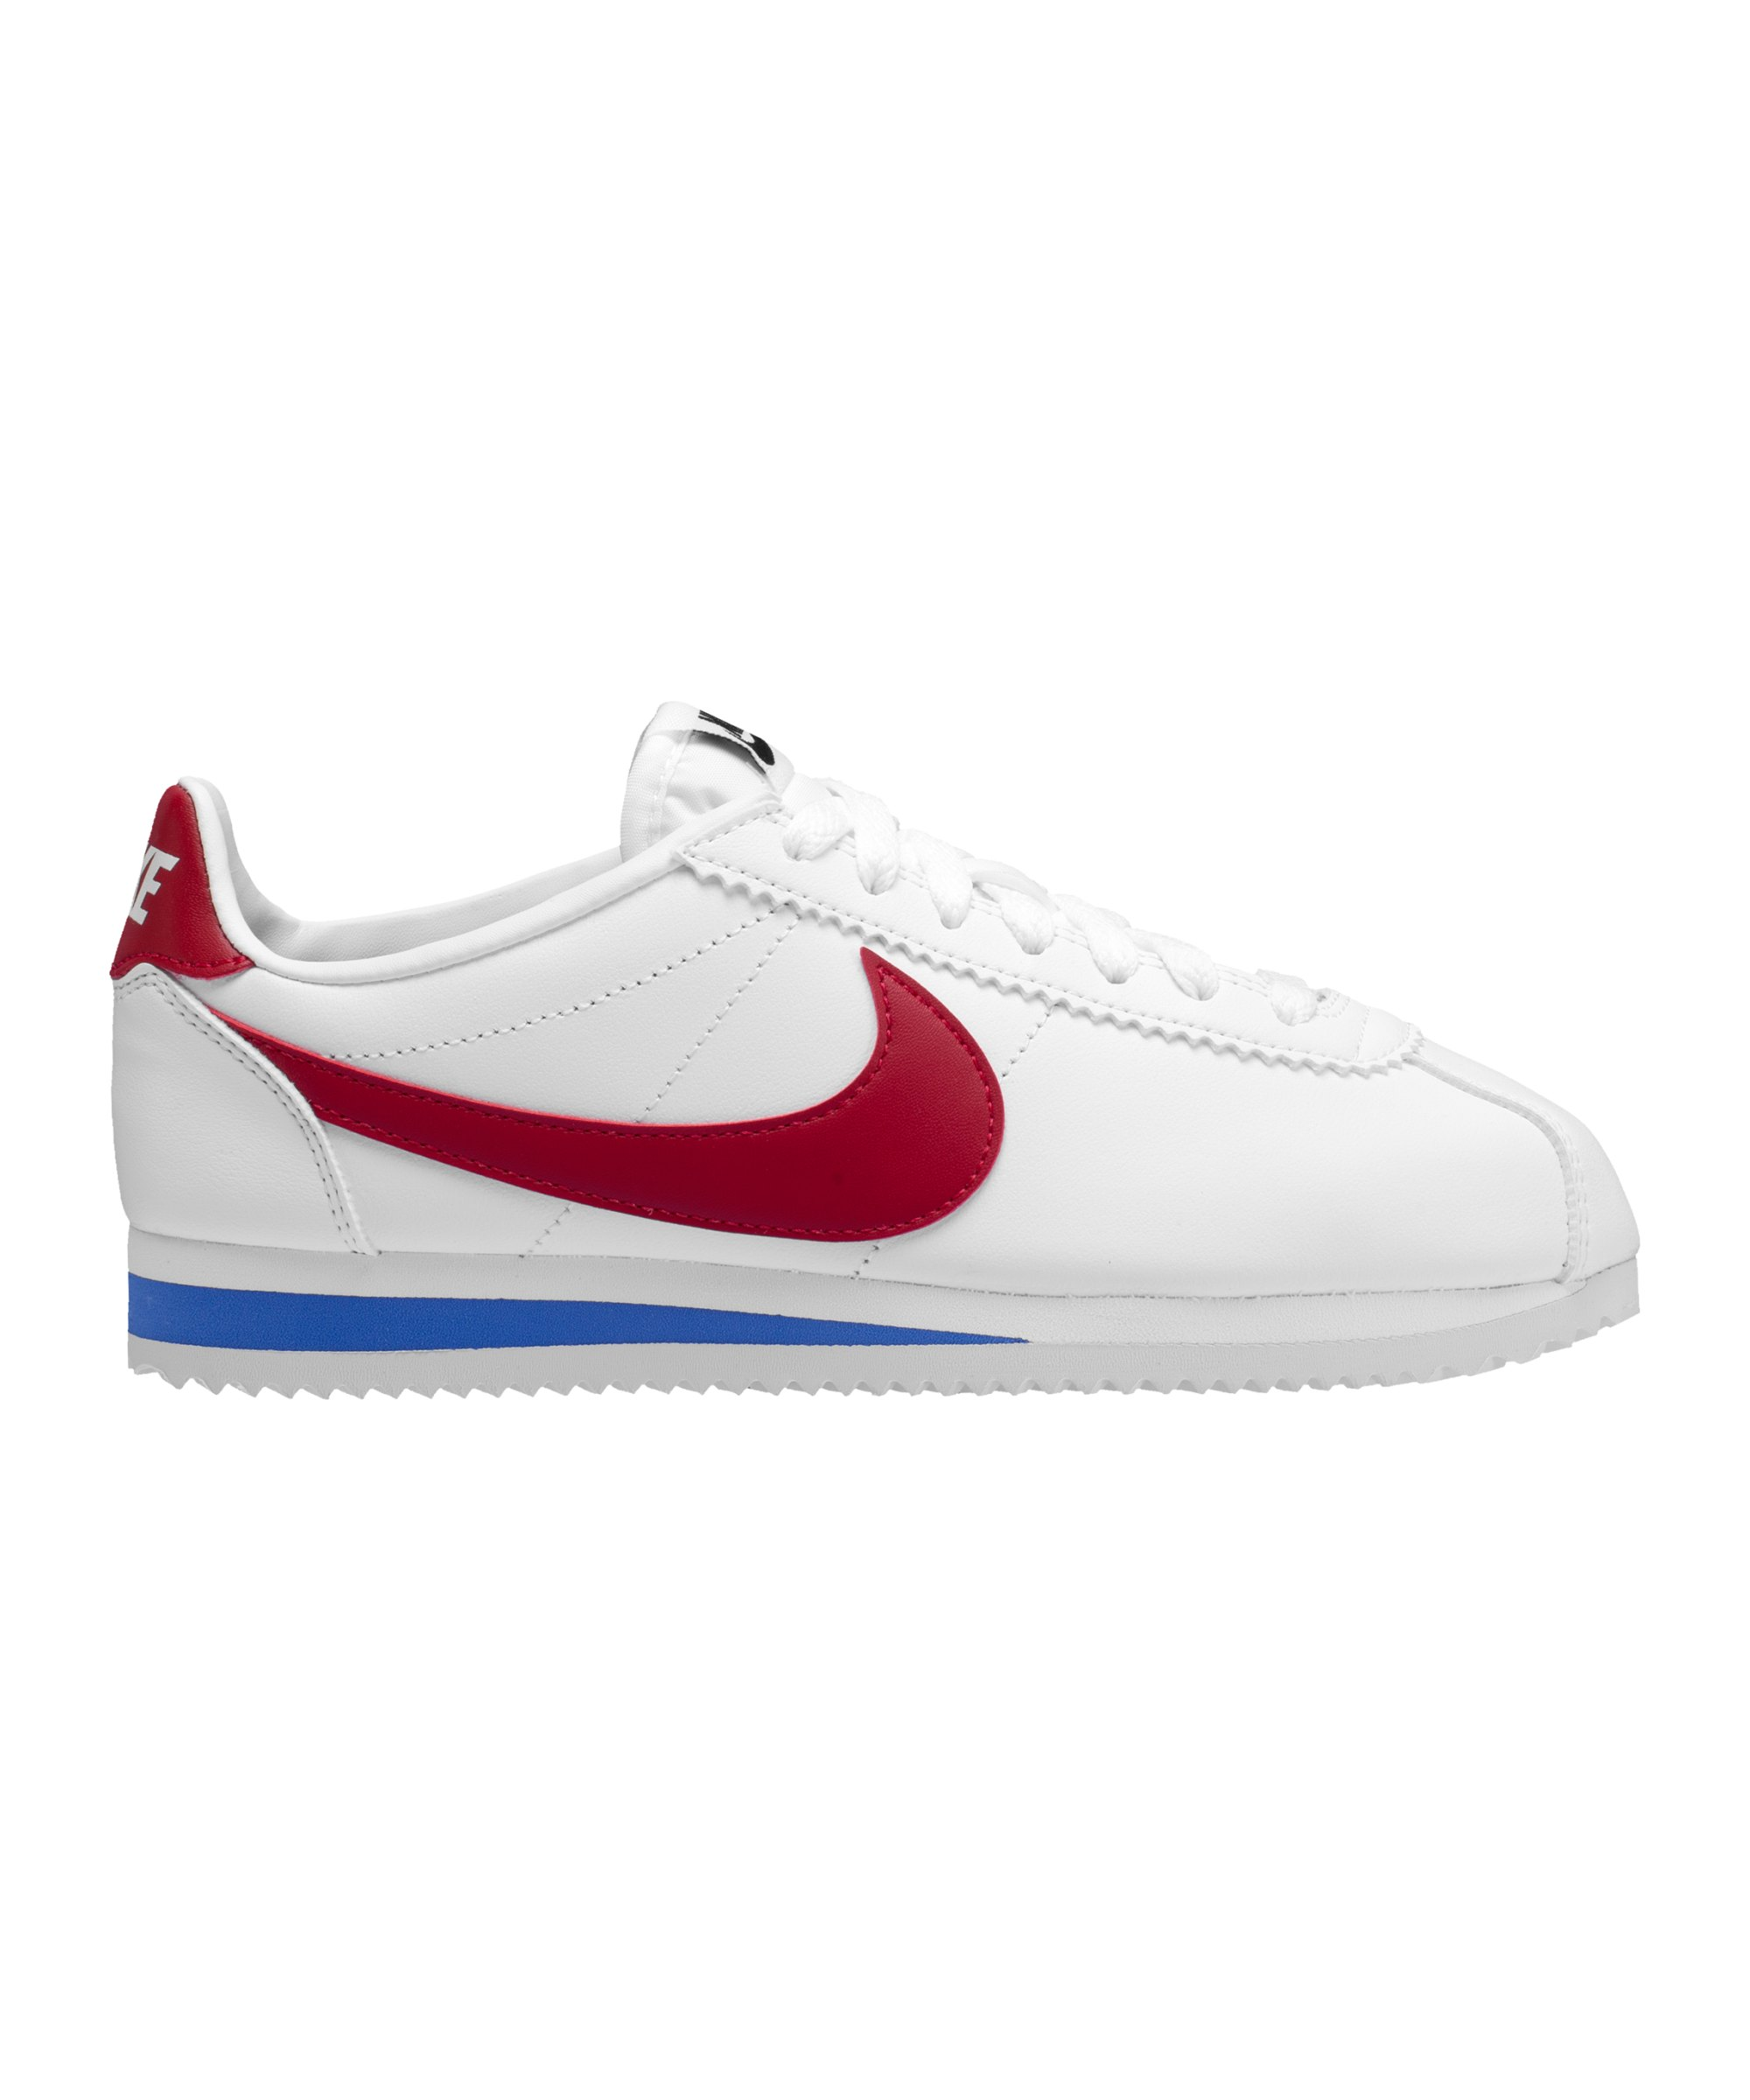 nike classic cortez leder sneaker damen weiss f103. Black Bedroom Furniture Sets. Home Design Ideas